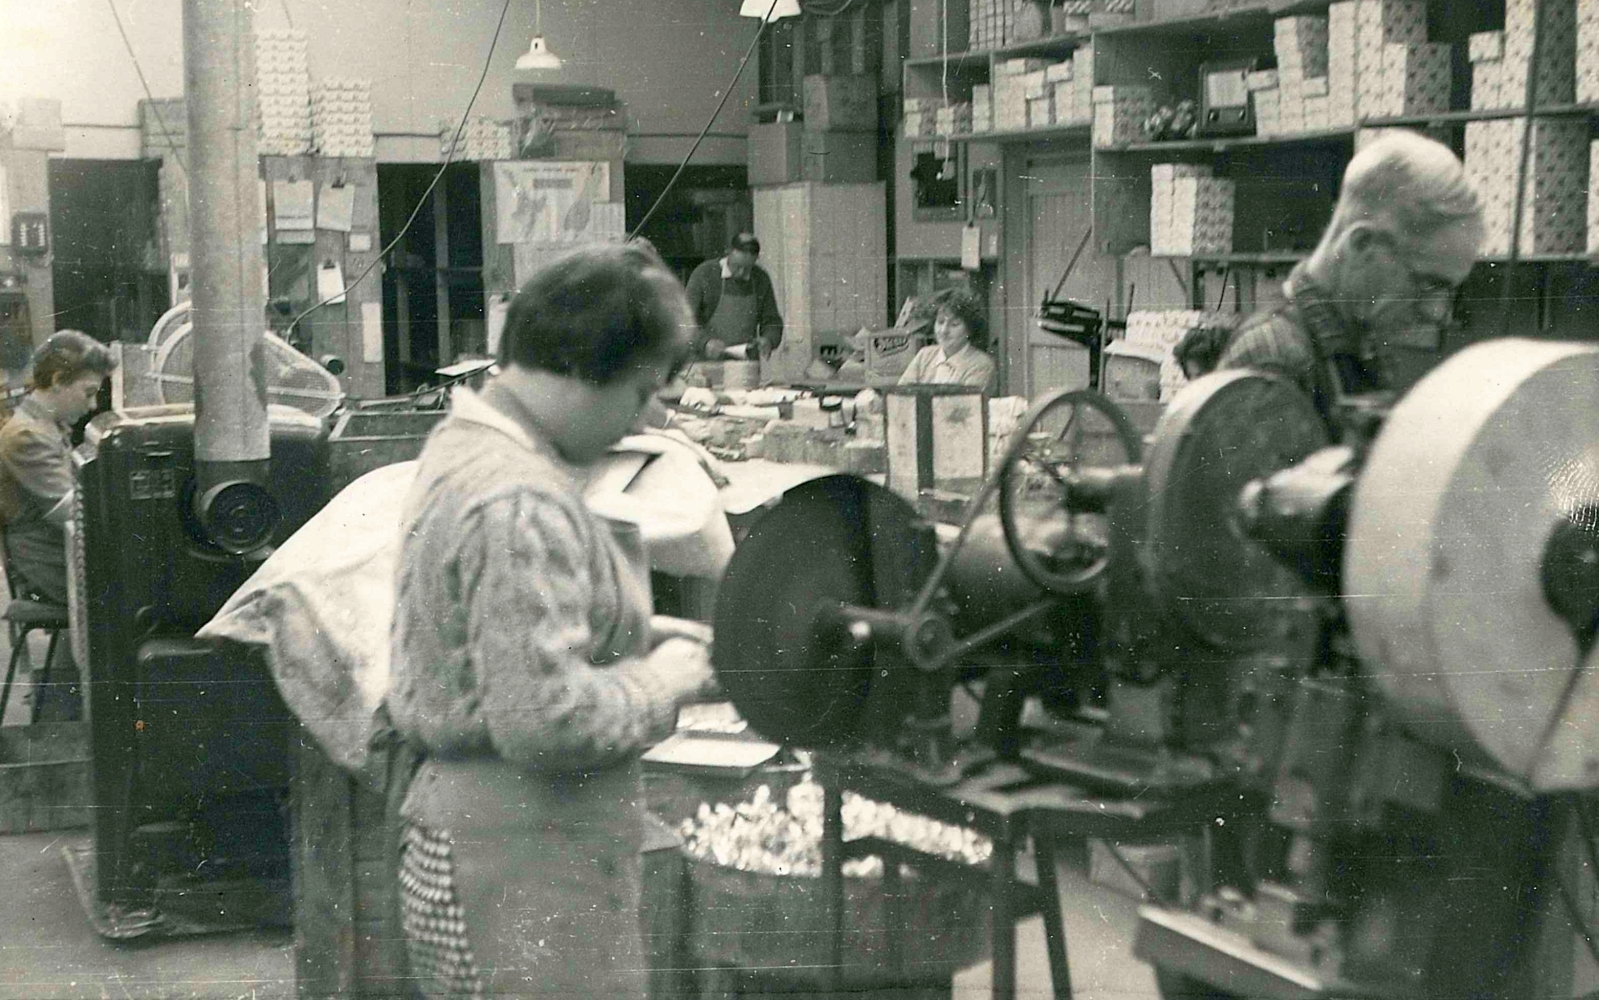 Black and white photograph  the factory floor. In the foreground is a machine and immediately behind are a young woman and older man working separately.  In the background are three other people, heads down, at desks, and shelves filled with boxes.